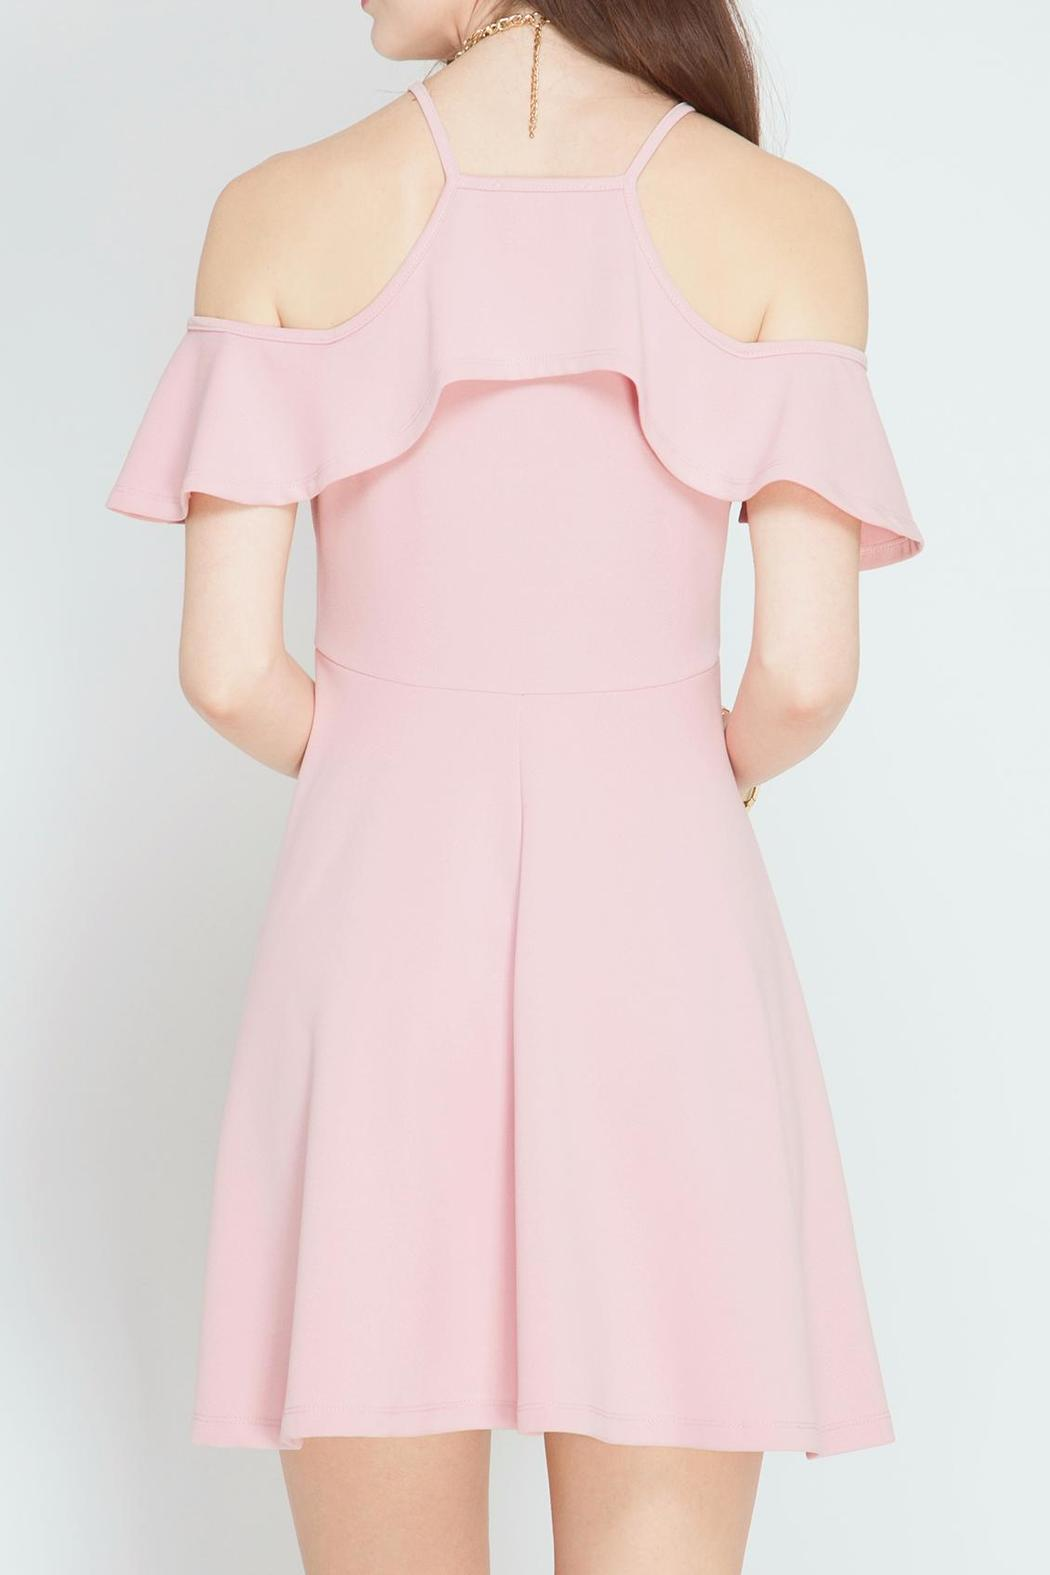 She + Sky Pink Petal Dress - Side Cropped Image